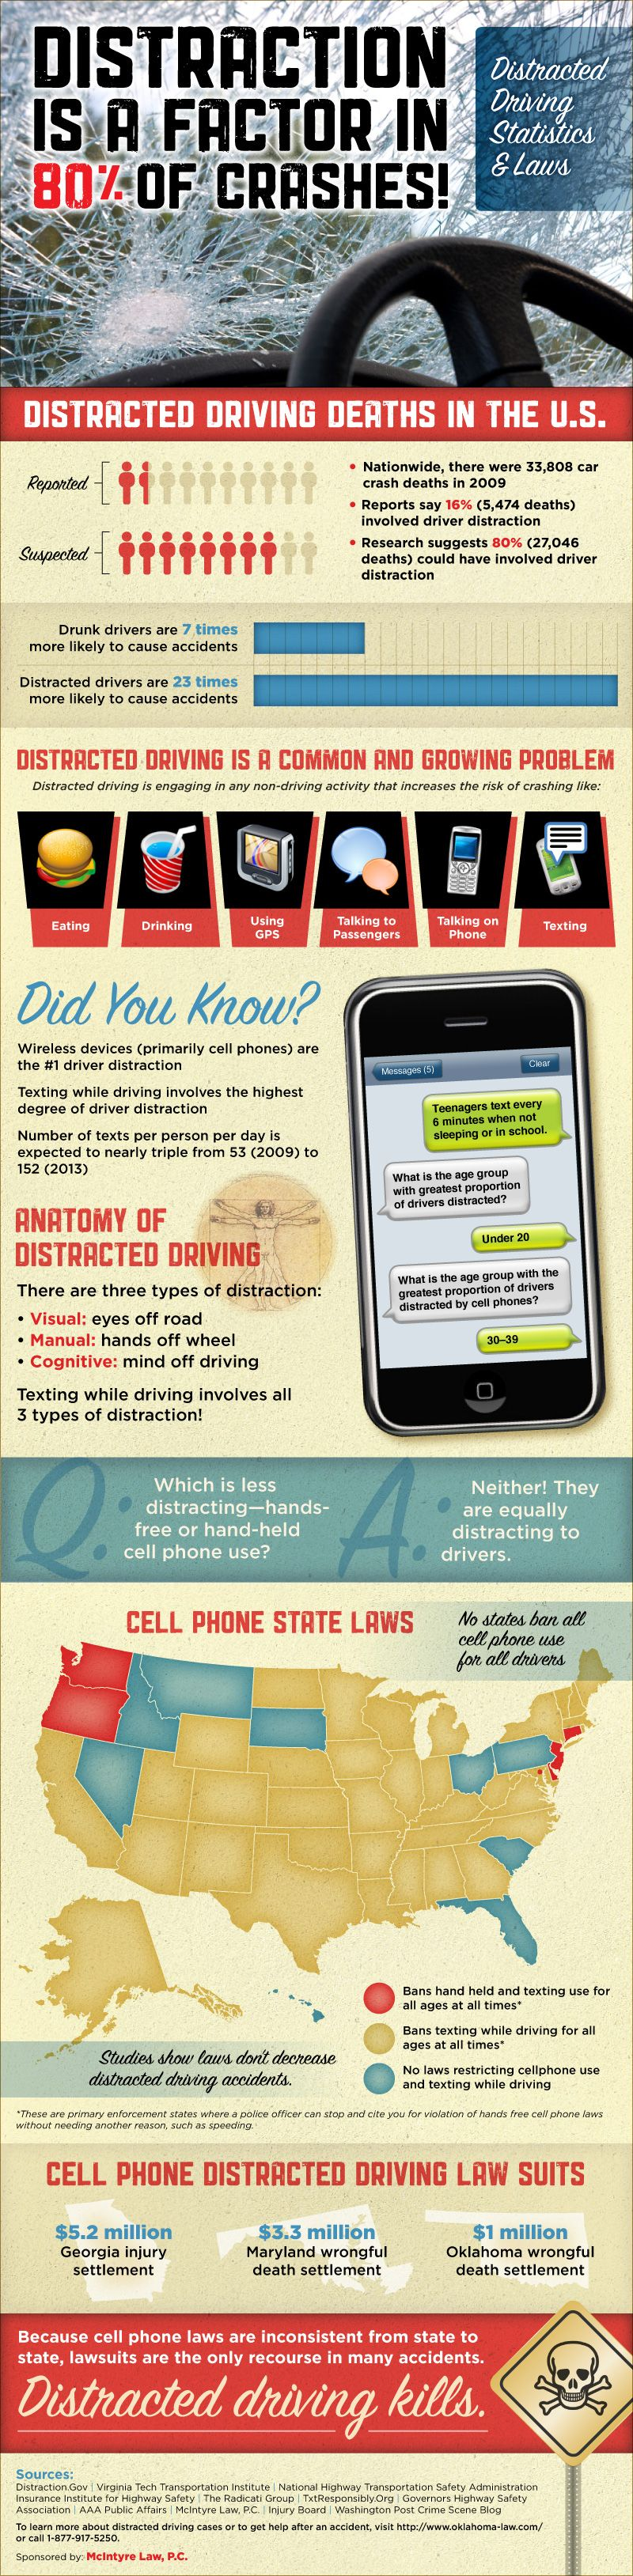 23 Engrossing Statistics and Facts About Distracted